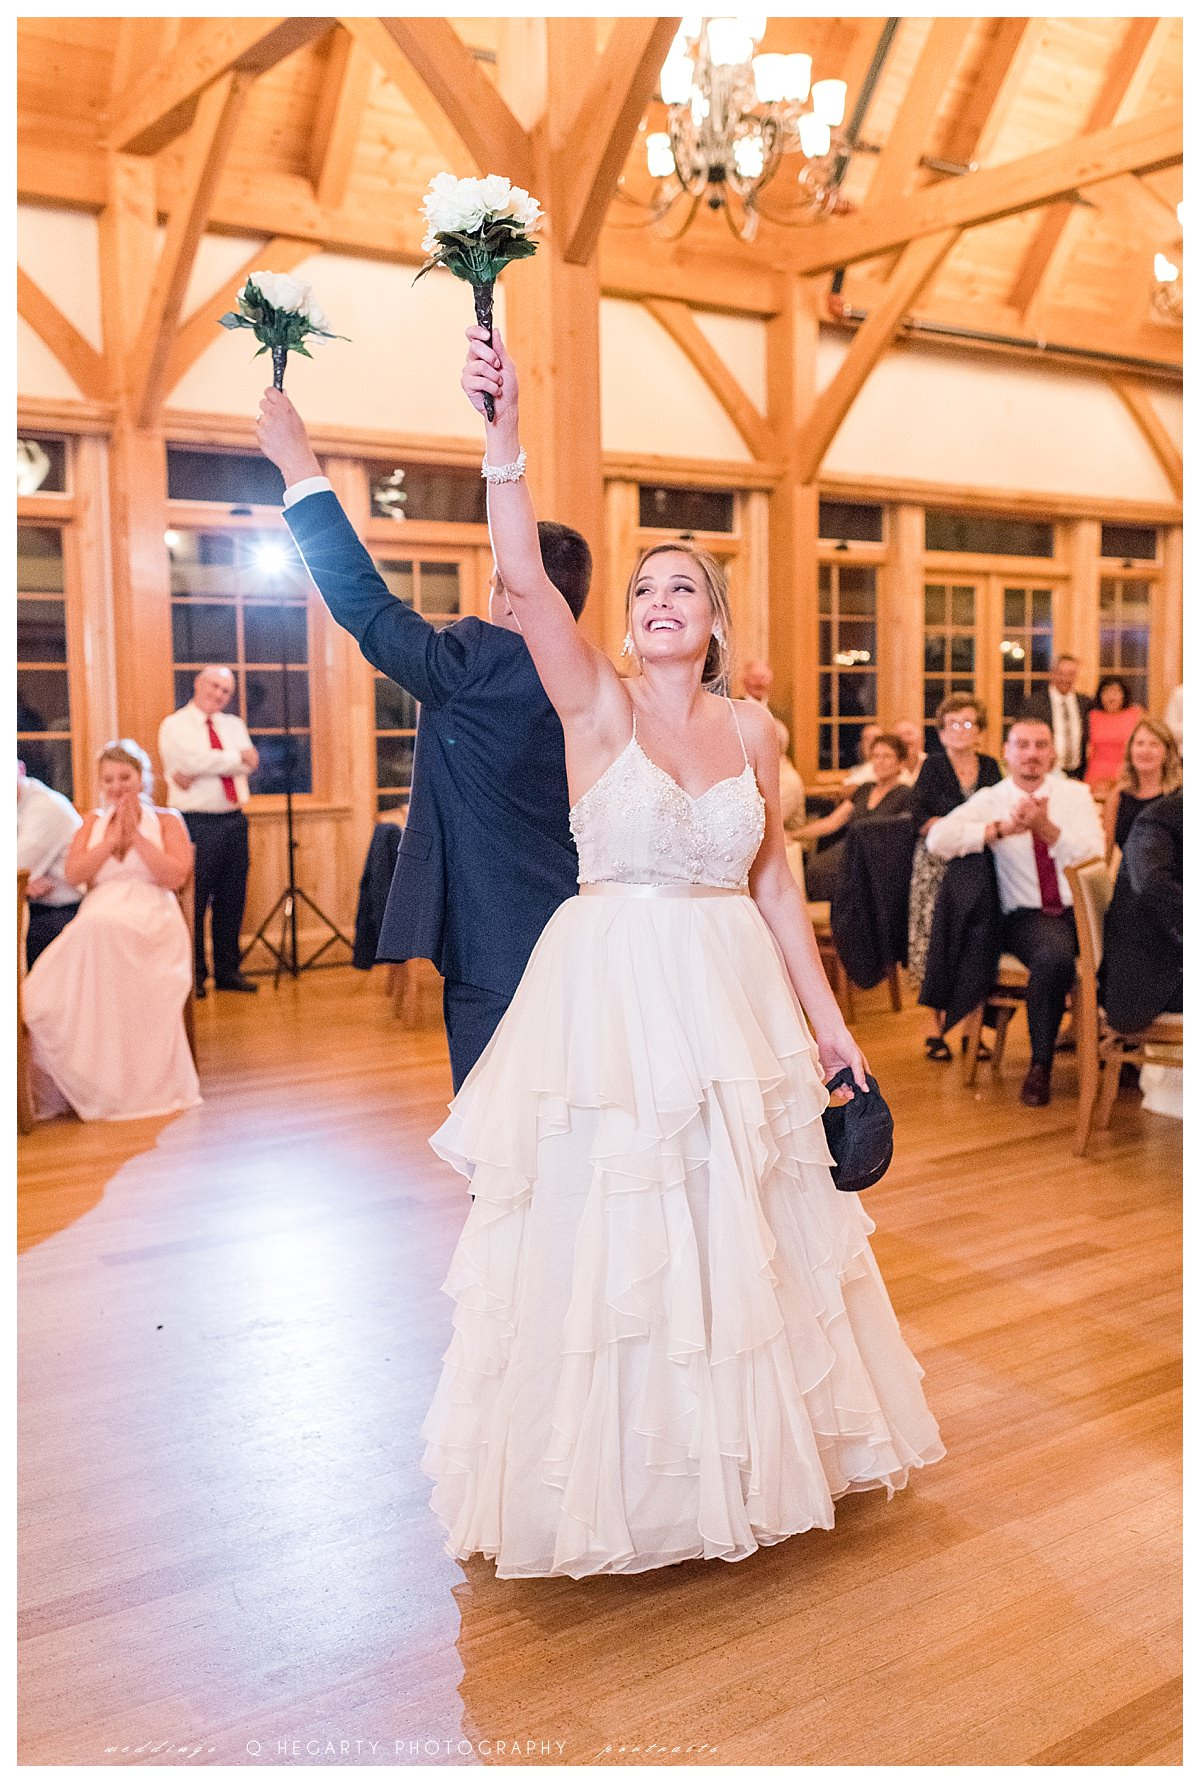 Q Hegarty Photography summer wedding 2018 at The Red Barn at Outlook Farm South Berwick ME 0099 Boston Fine Art Wedding Photographer - Qian Hegarty Photography